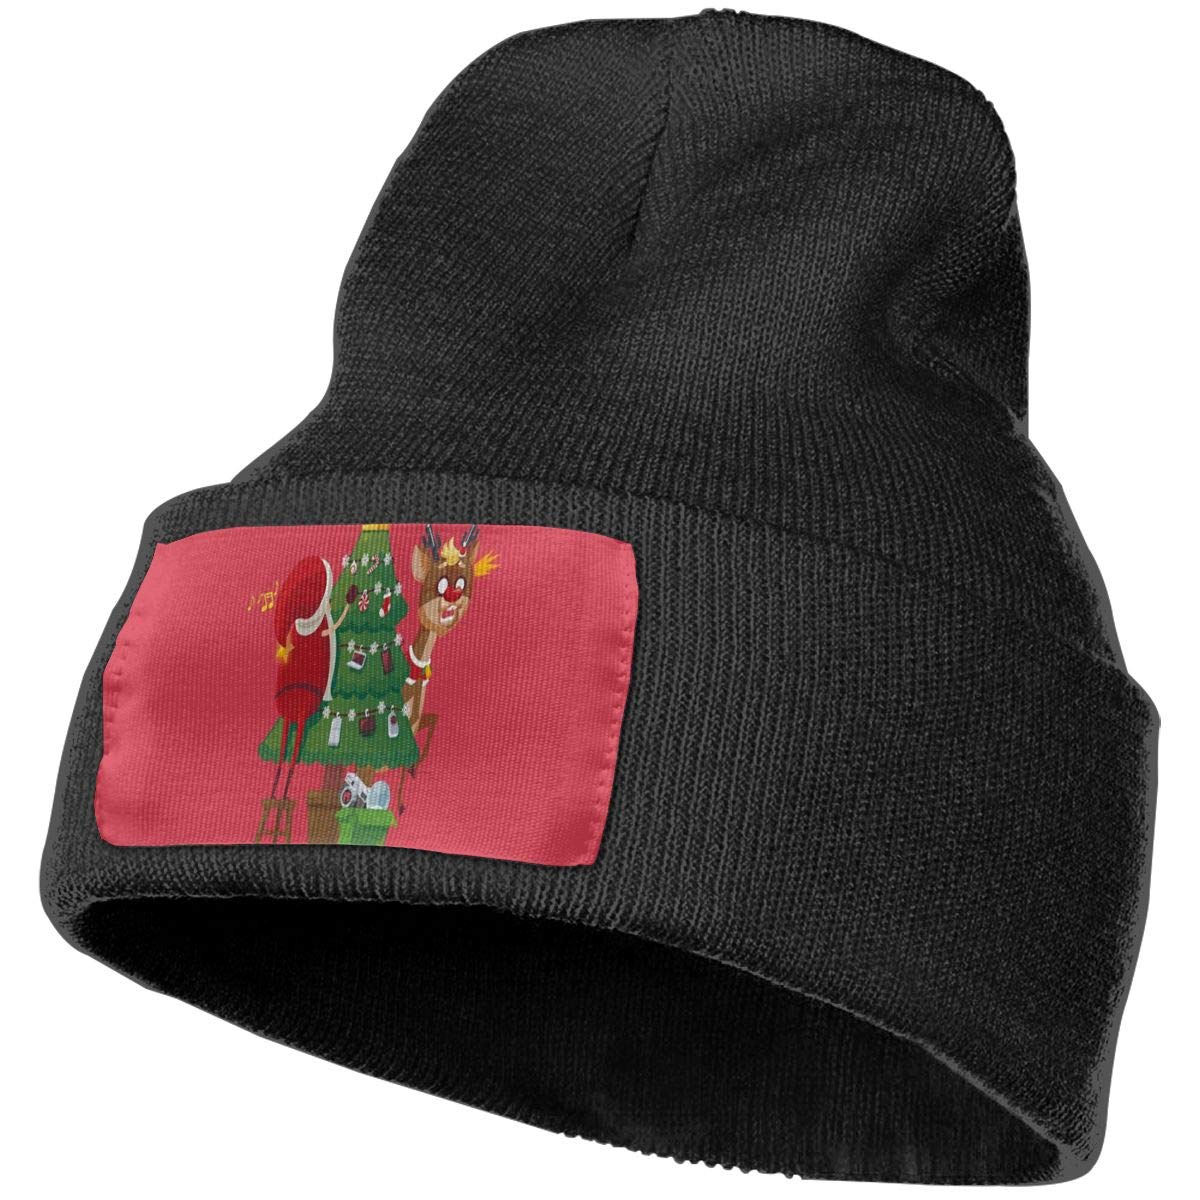 Congress Has to Die Hat for Men and Women Winter Warm Hats Knit Slouchy Thick Skull Cap